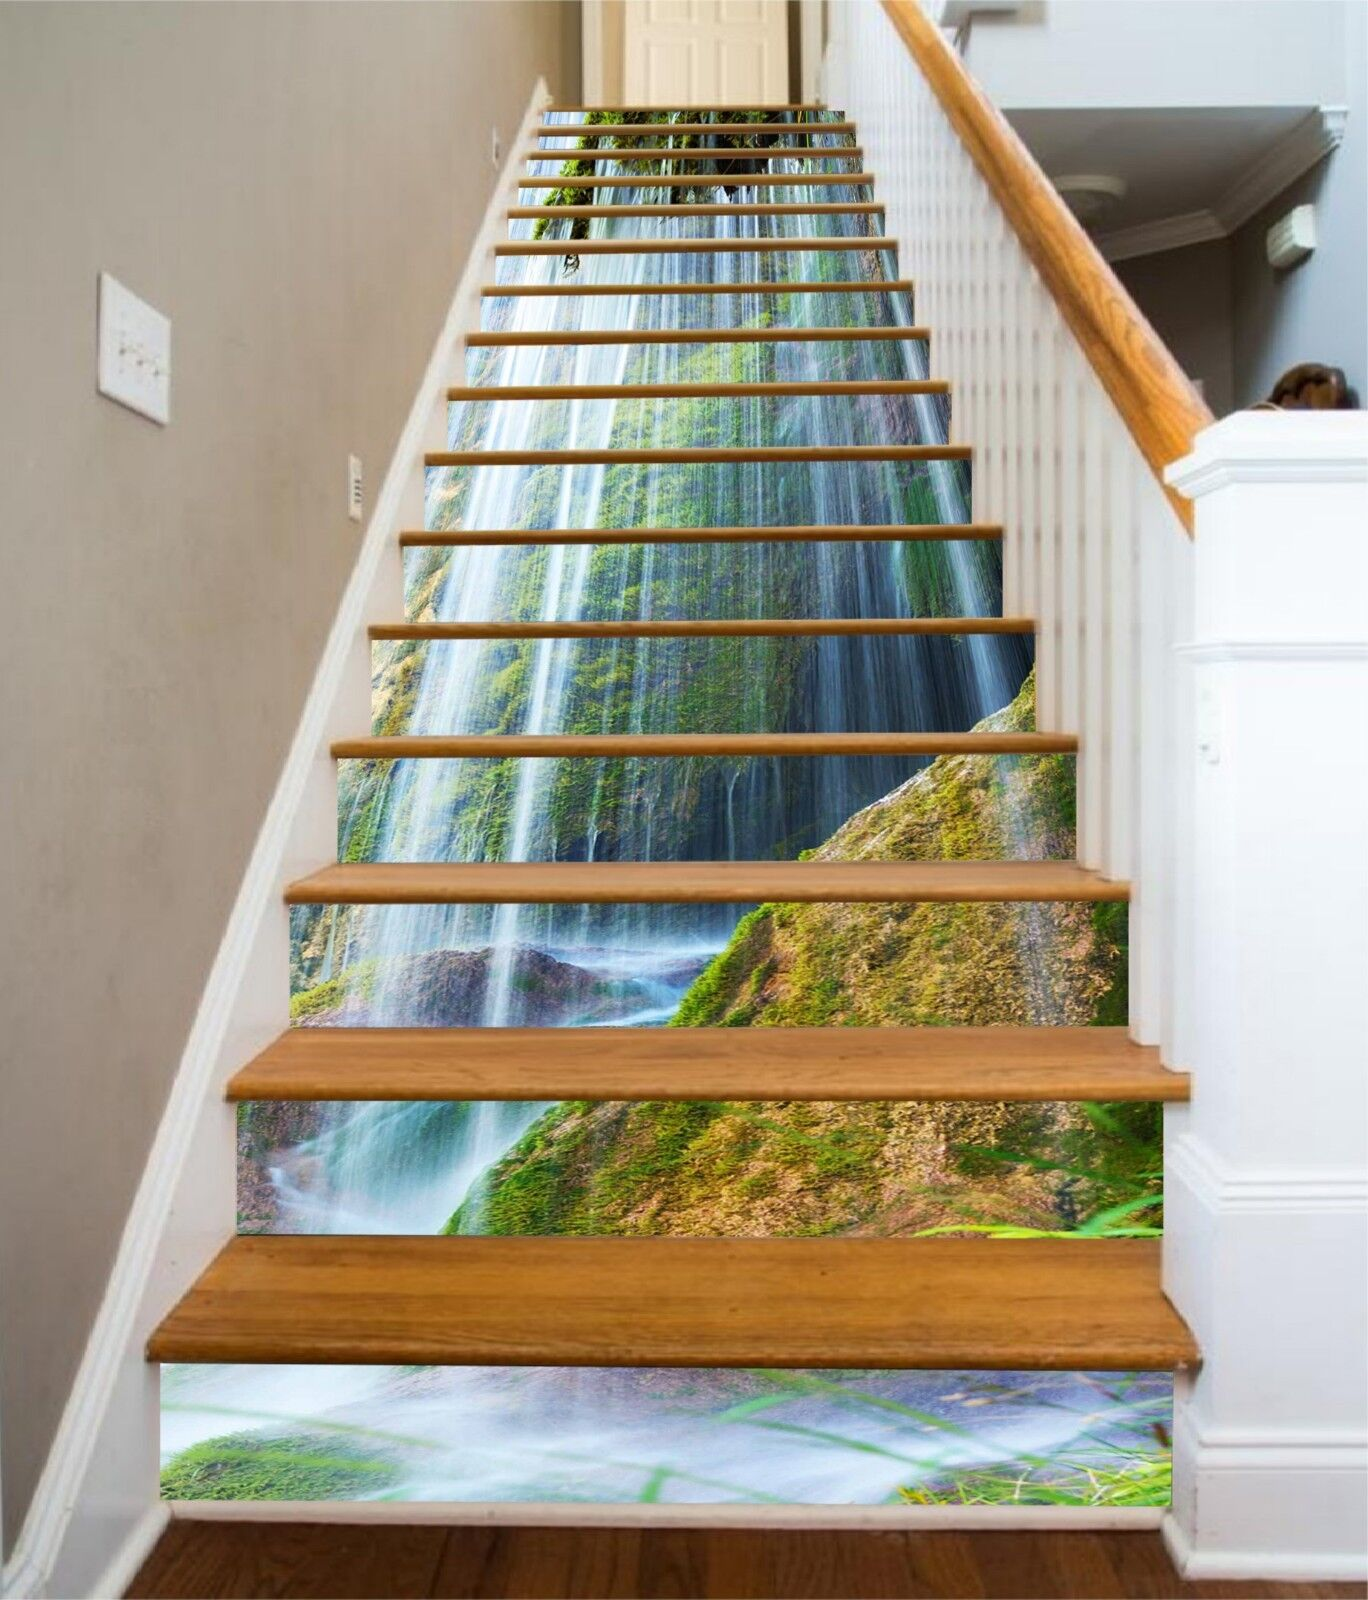 3D Sunlight River 4 Stair Risers Decoration Photo Mural Vinyl Decal WandPapier UK